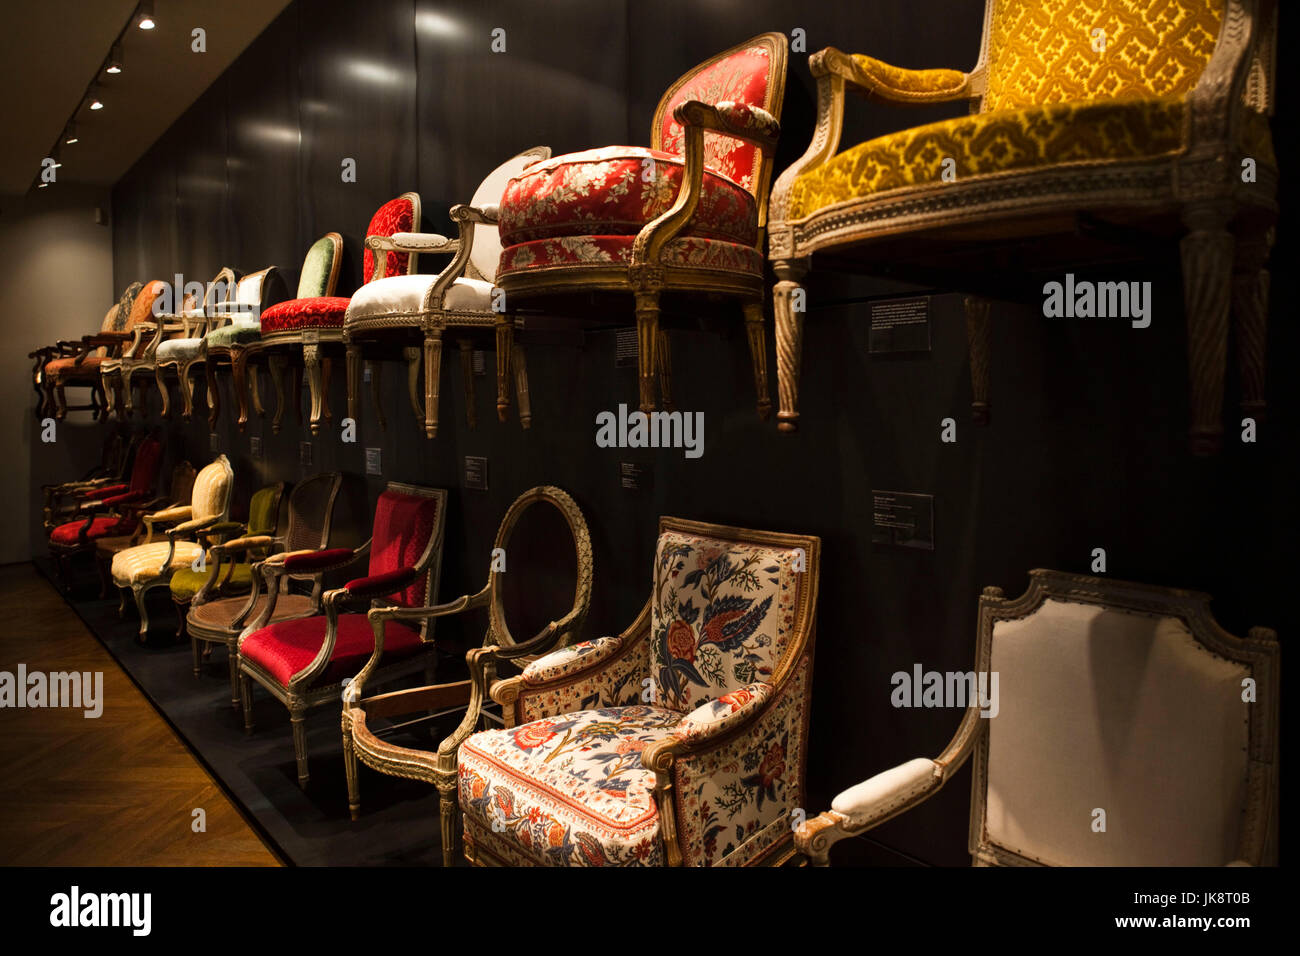 France, Paris, Museum of Decorative Art, exhibit of 18th and 19th century chairs Stock Photo